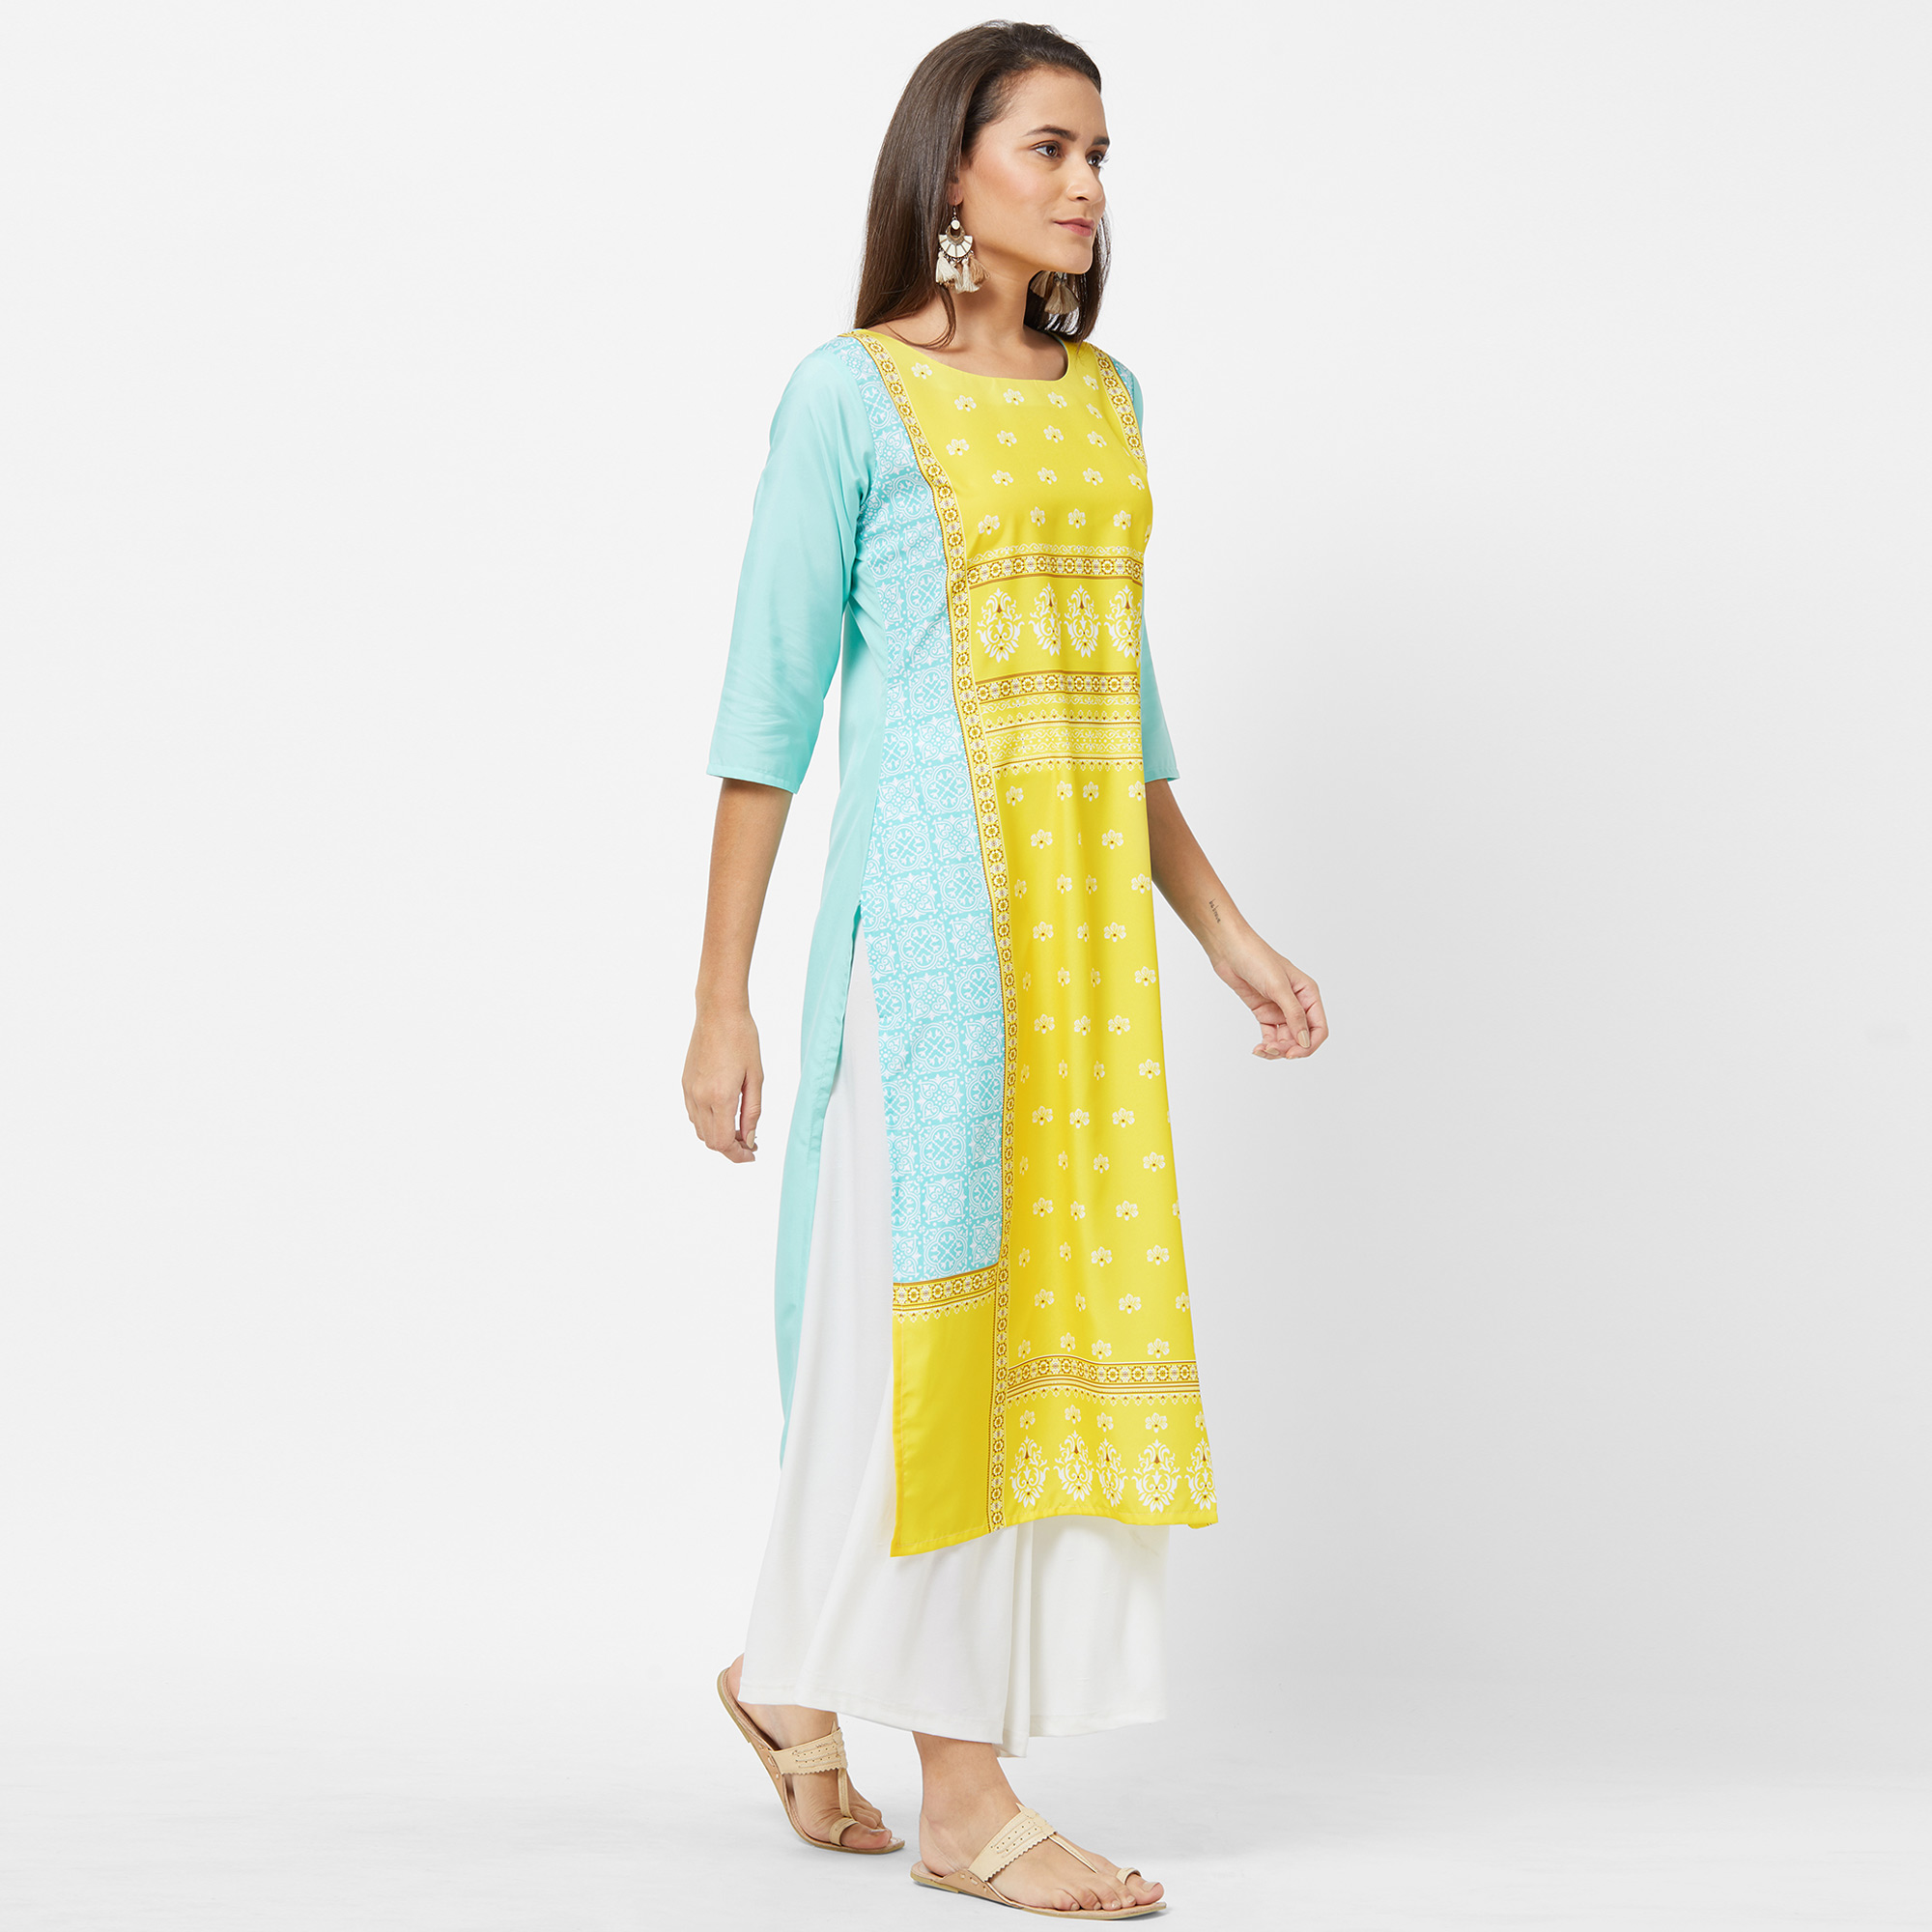 Marvellous Yellow-Sky Blue Colored Casual Printed Crepe Kurti